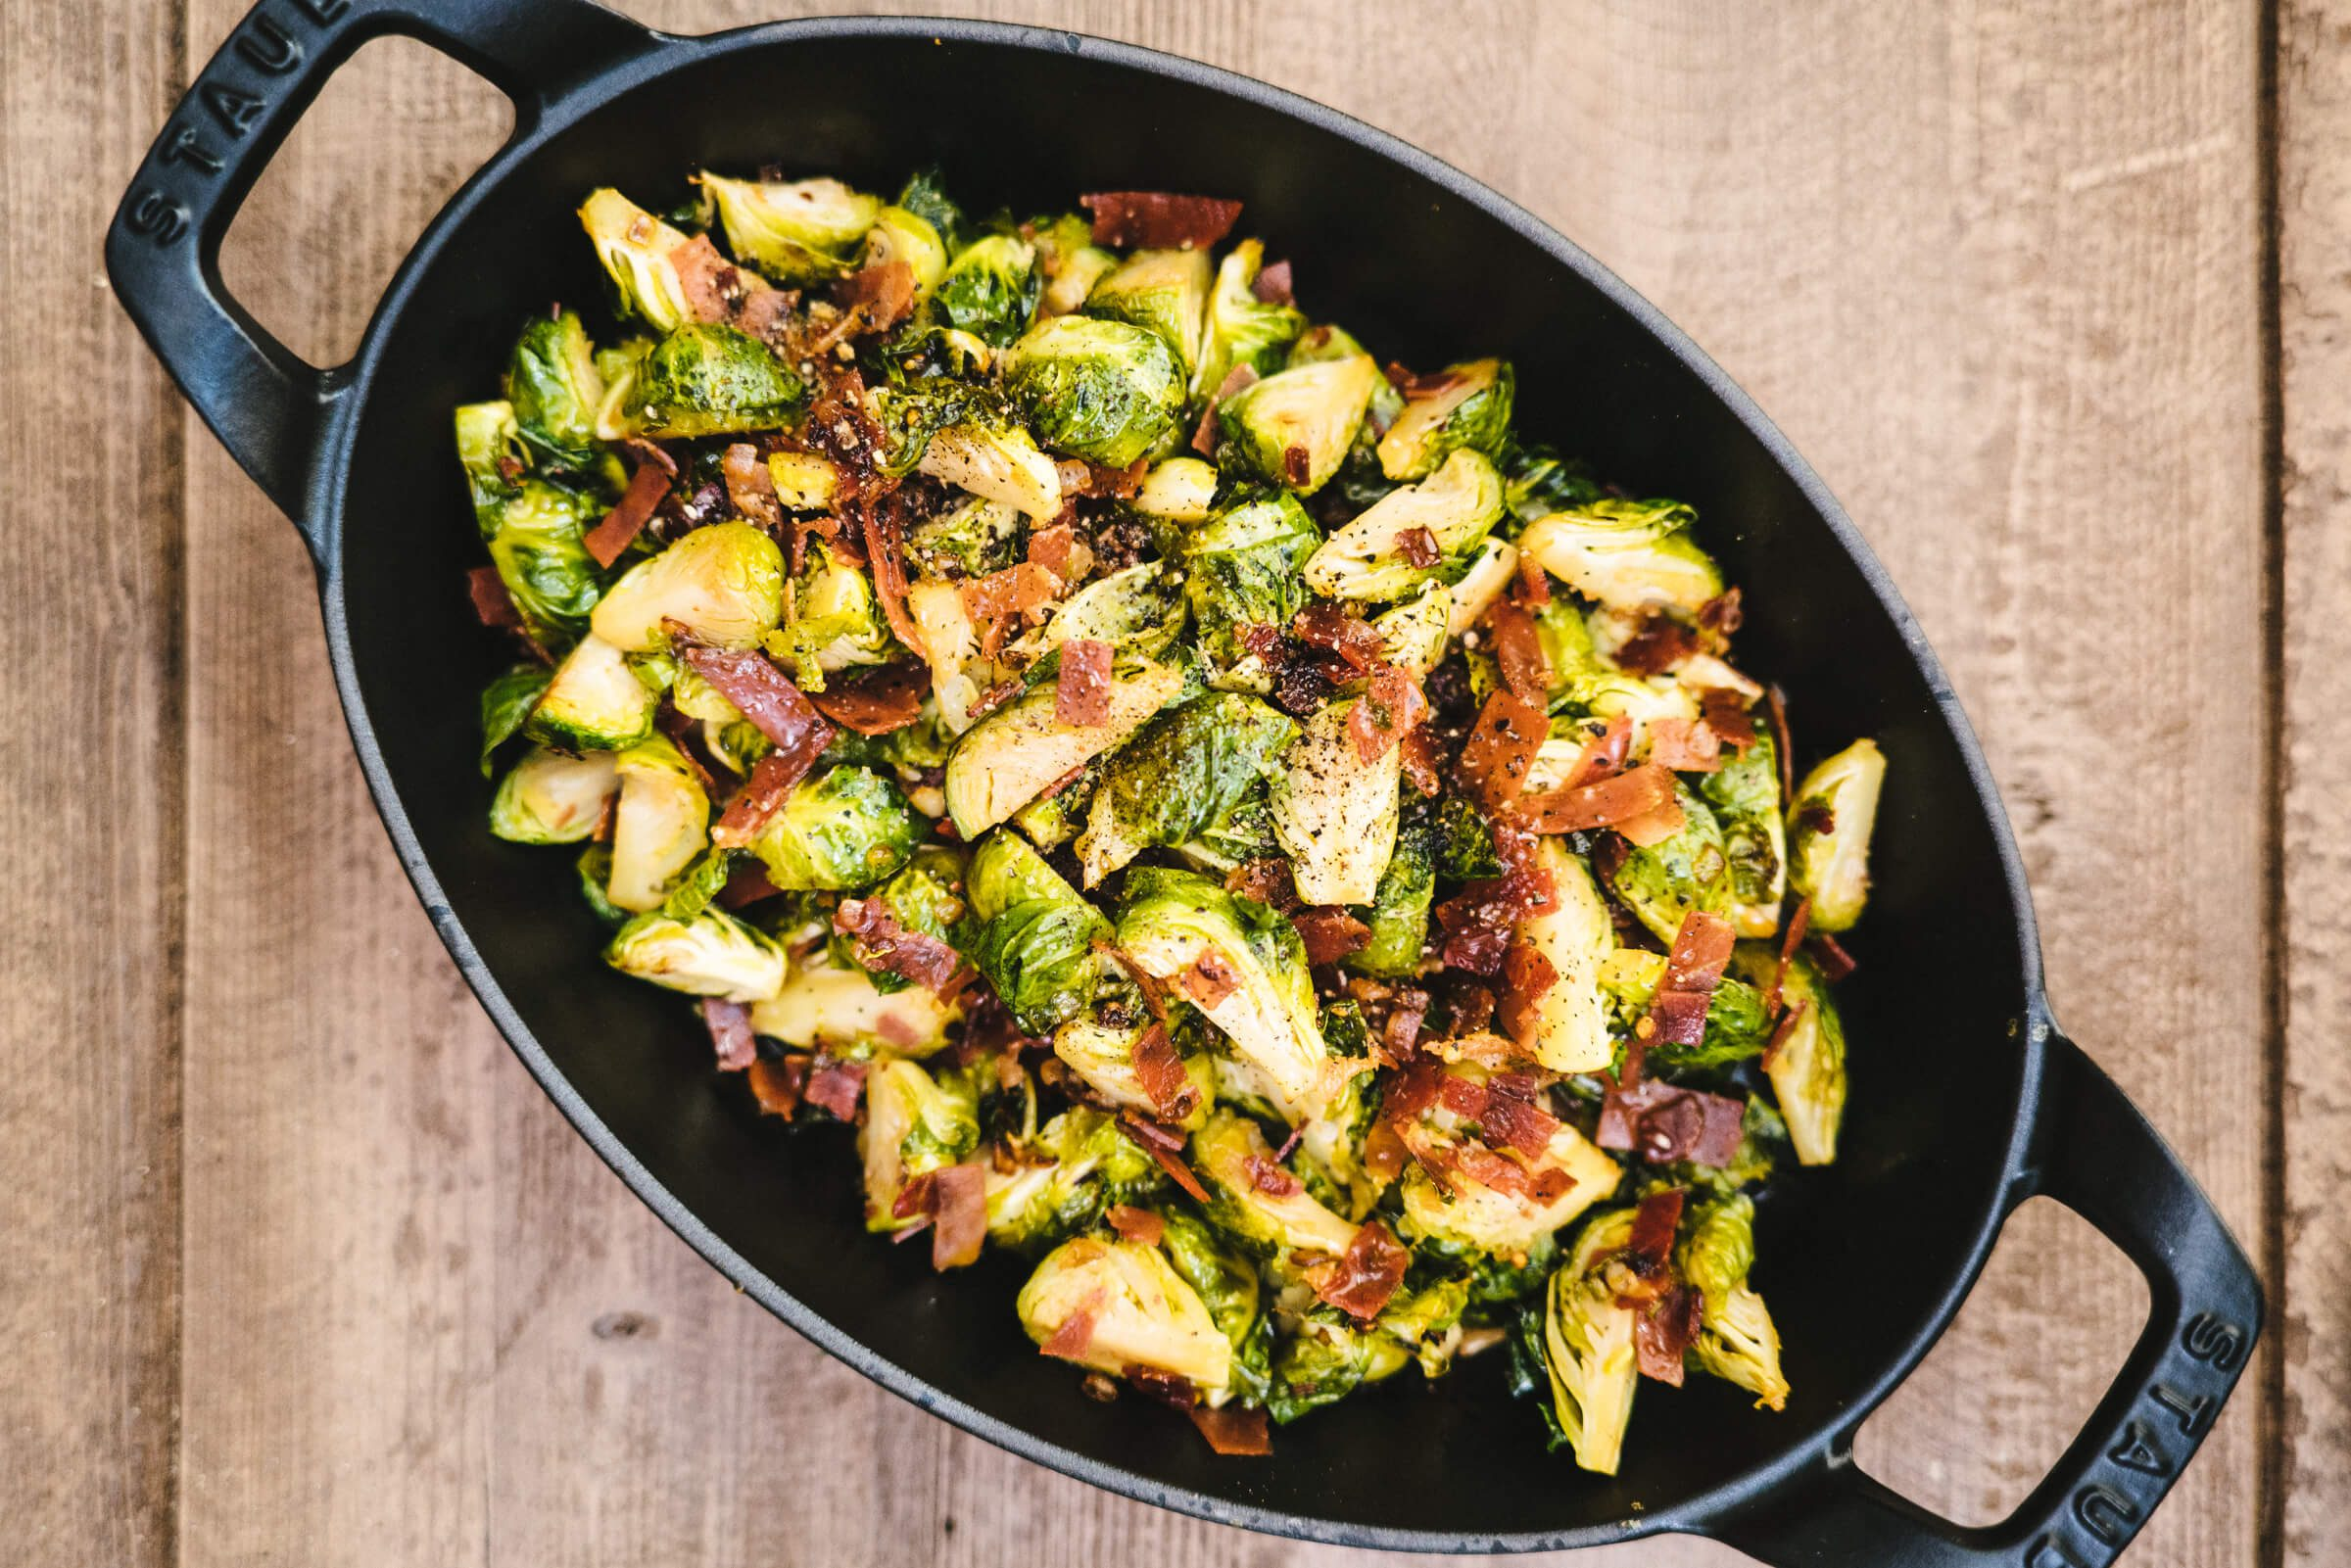 The Taste Edit made brussel sprouts with prosciutto di parma